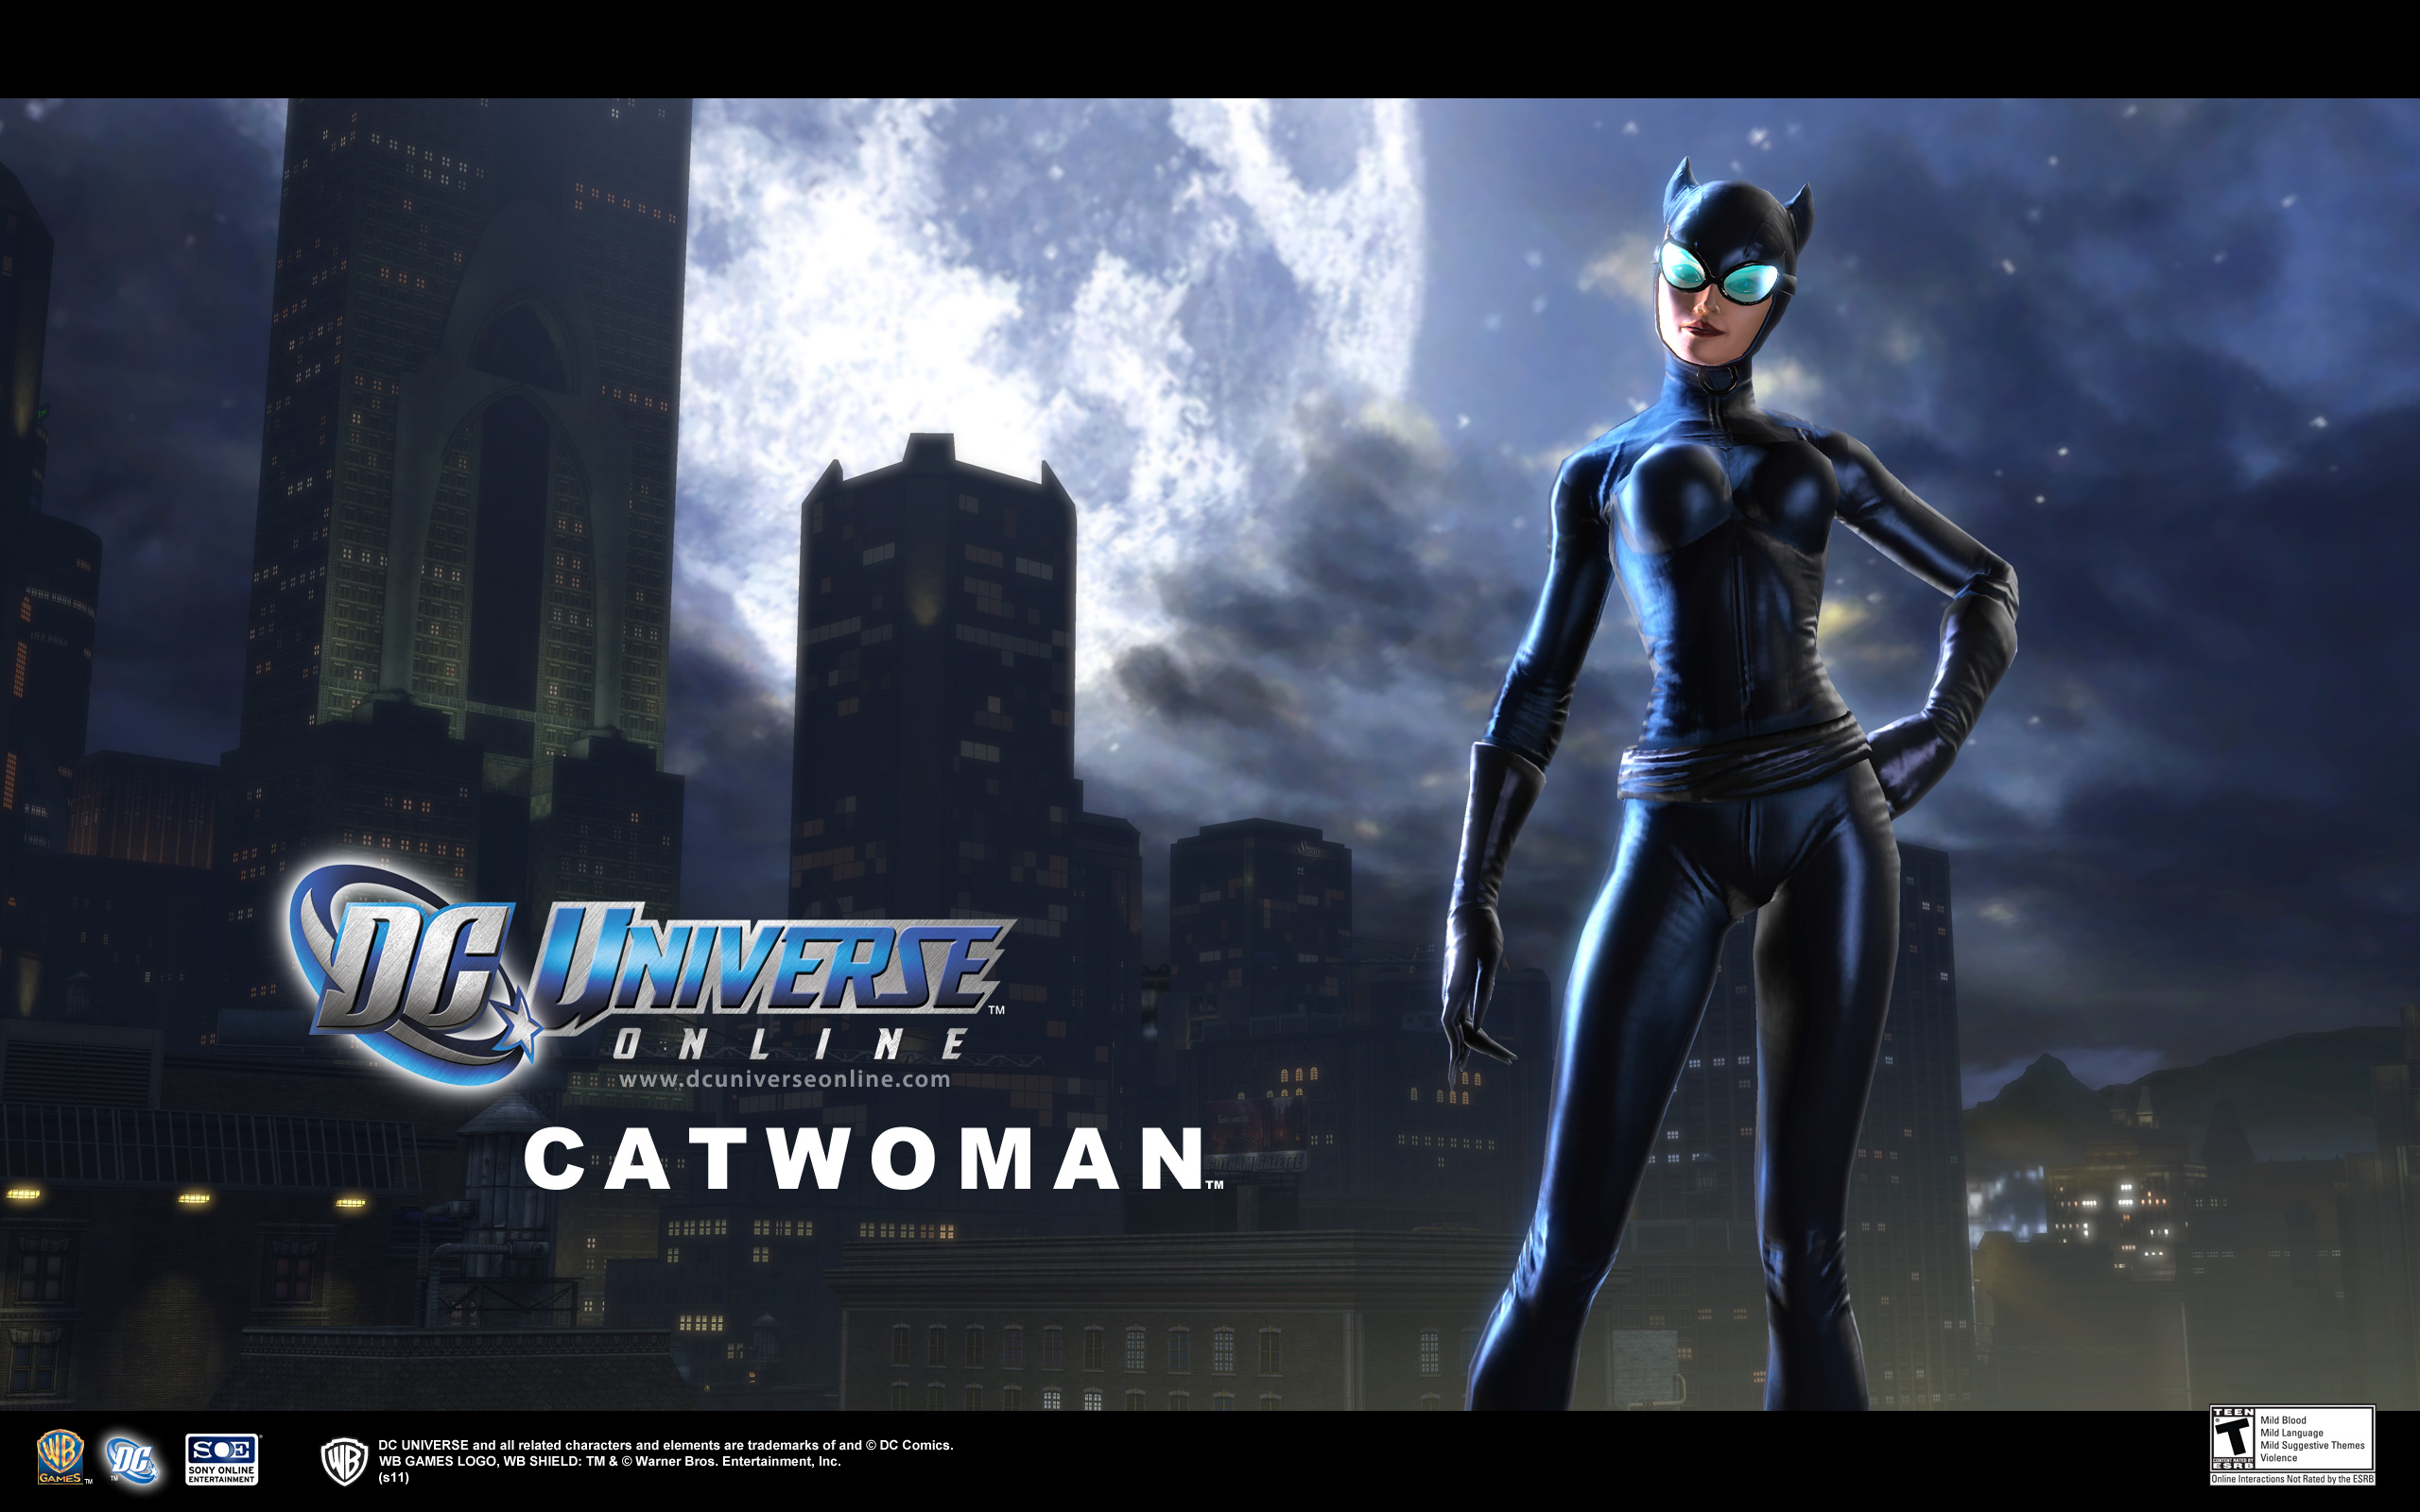 Catwoman [wide] 2560x1600